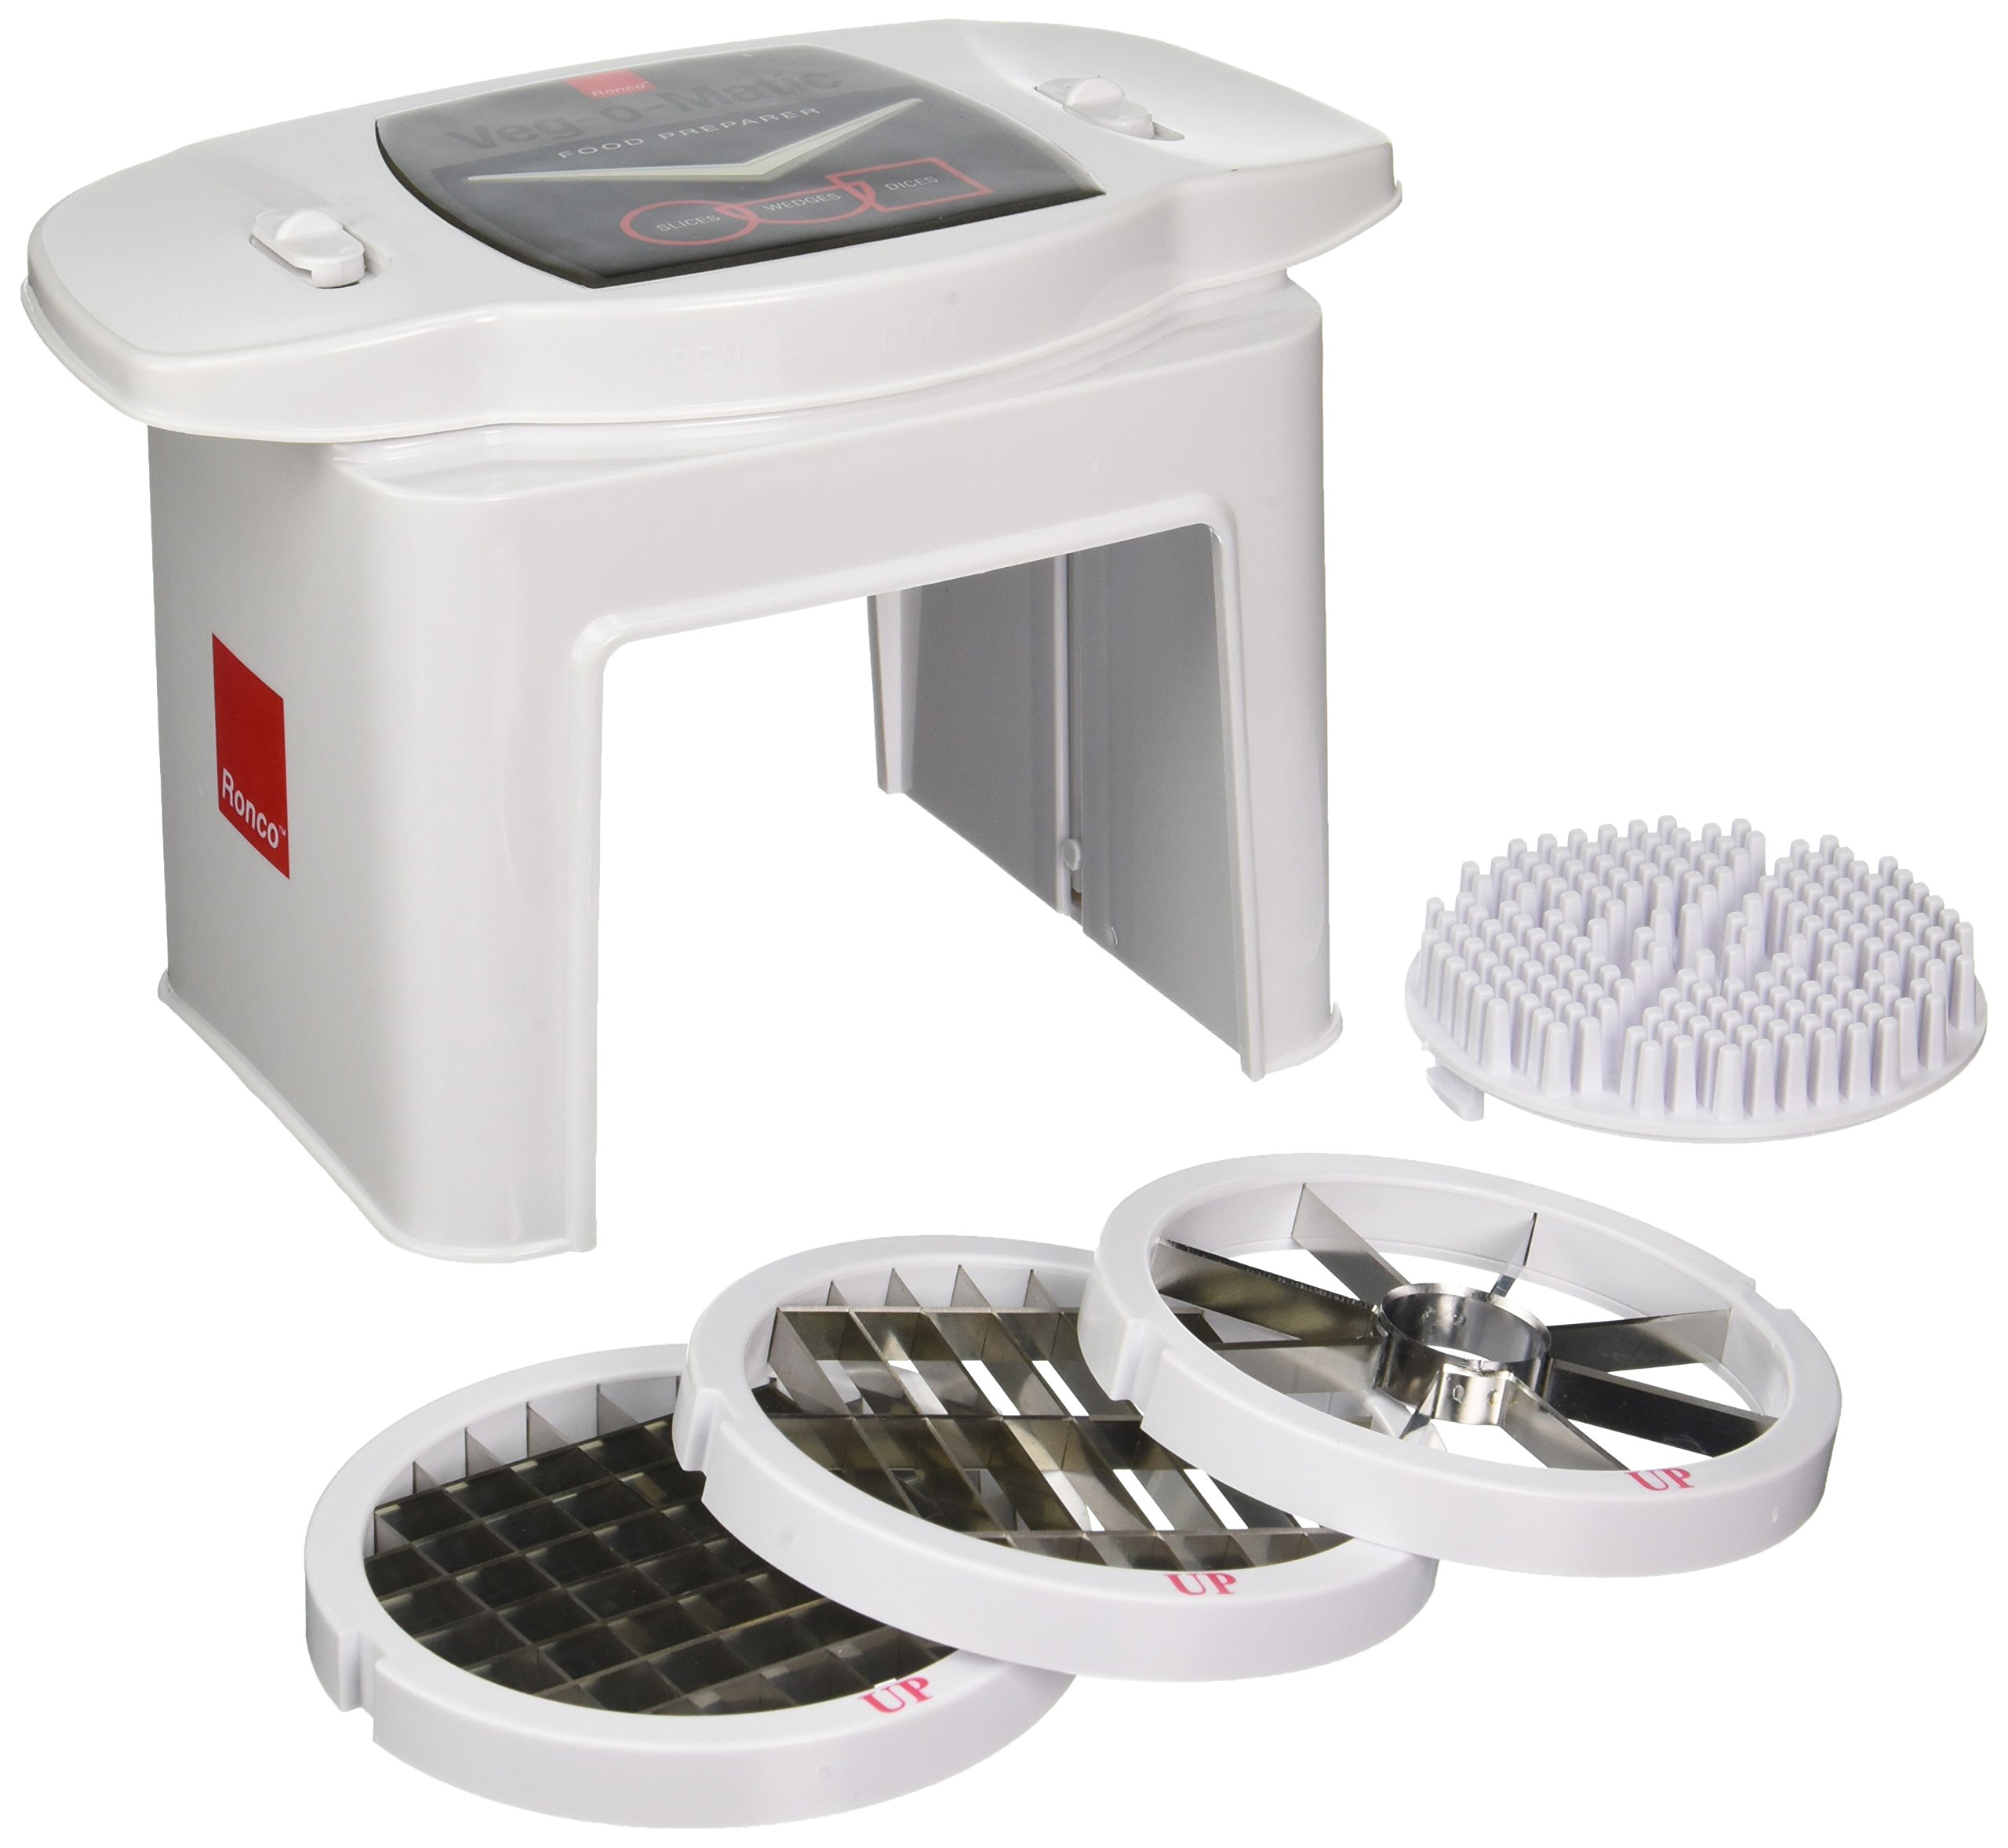 Ronco Veg-O-Matic Food Chopper by Ronco